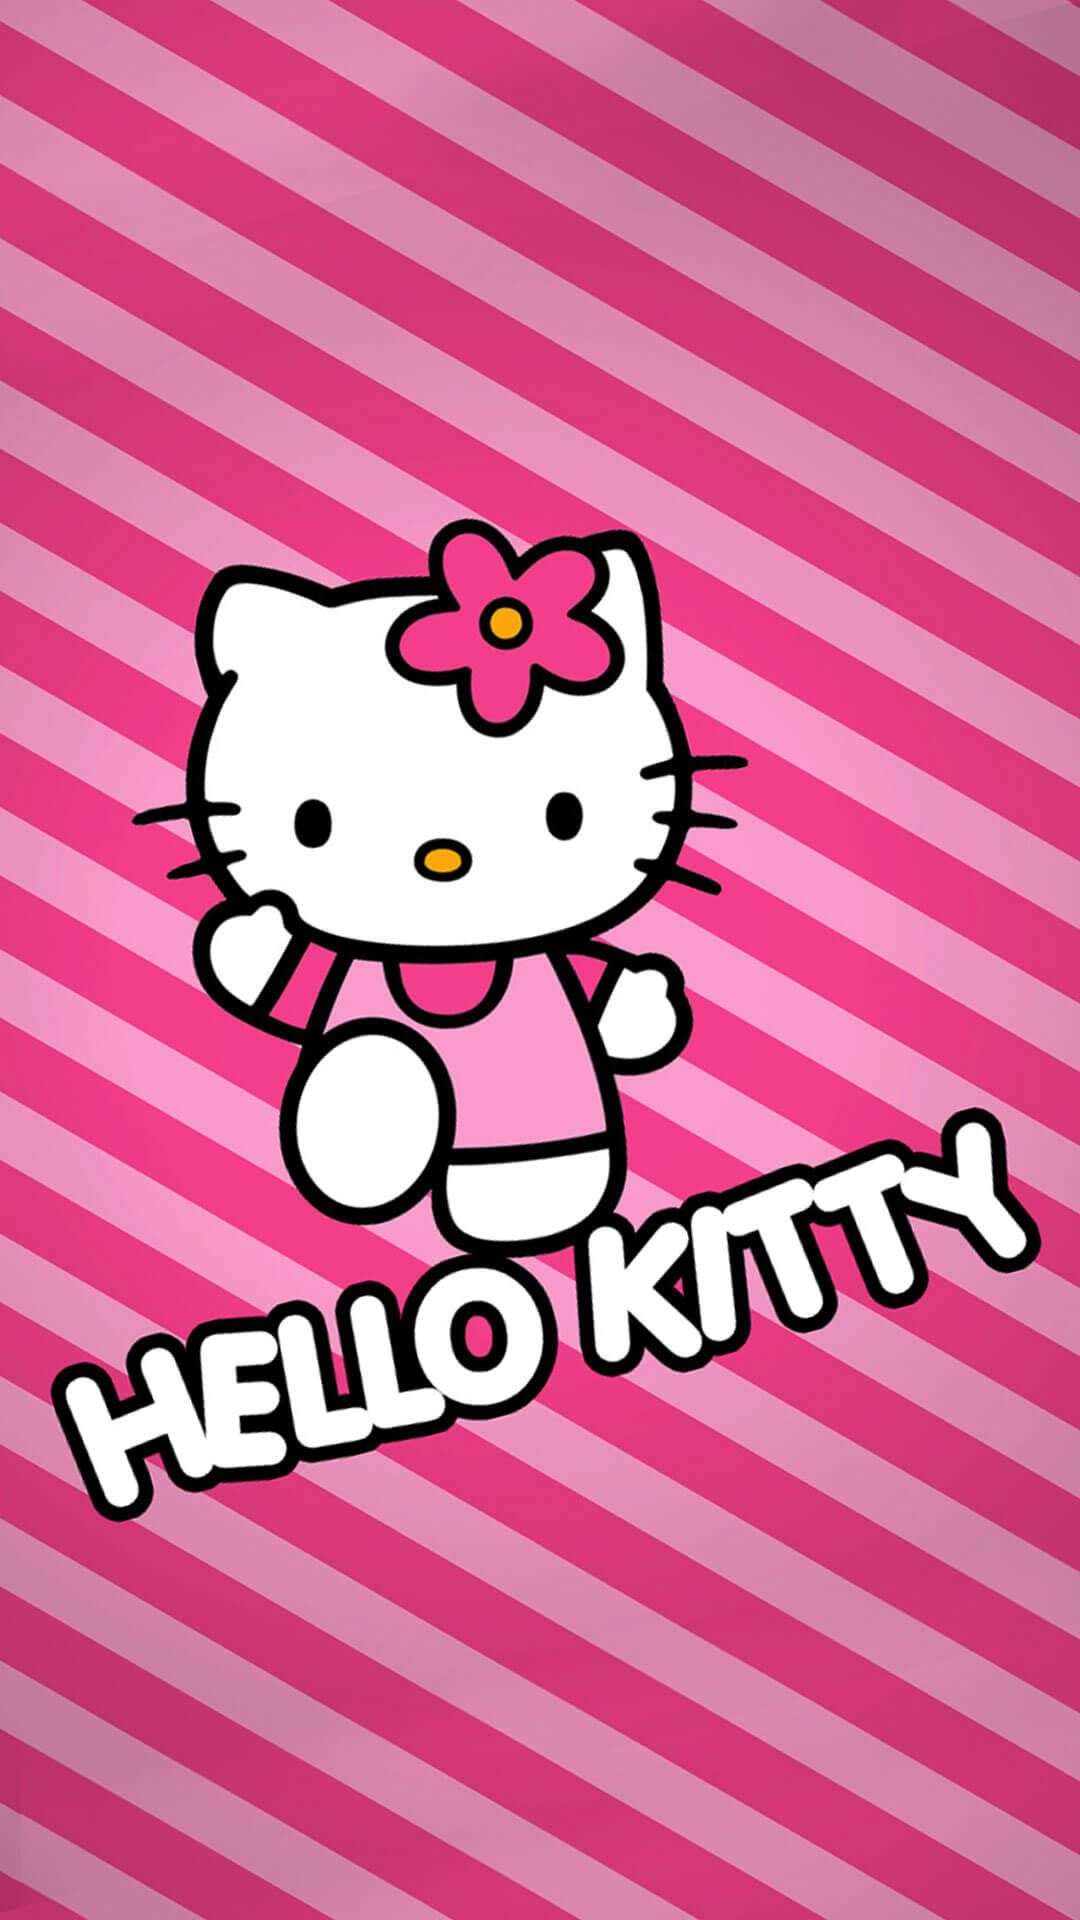 Iphone 6s wallpaper tumblr hd - Hello Kitty Iphone 6 Wallpaper Tumblr Hd